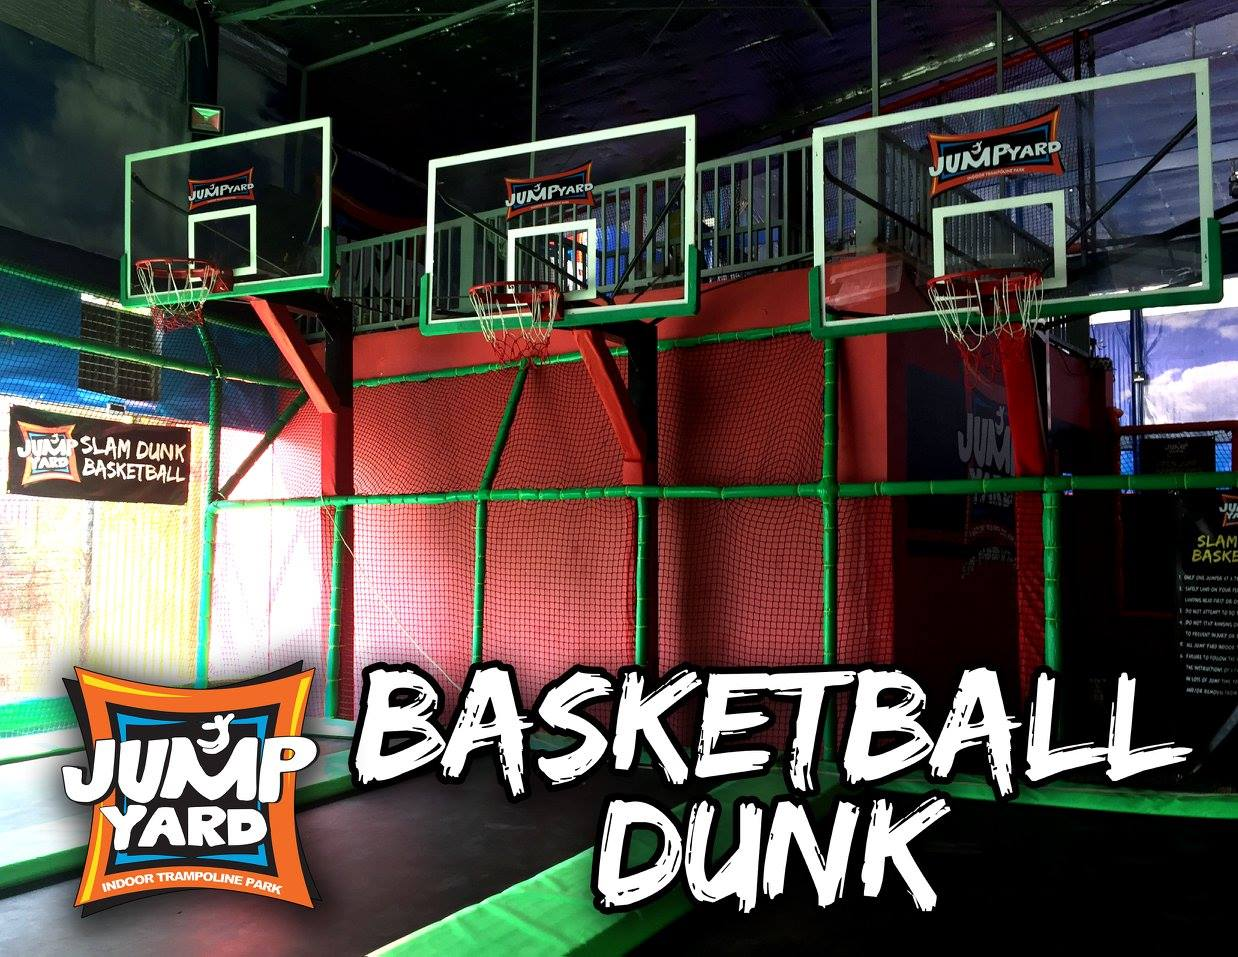 Boys and girls are sure to enjoy doing that slam dunk moment here at the Basketball dunk area.